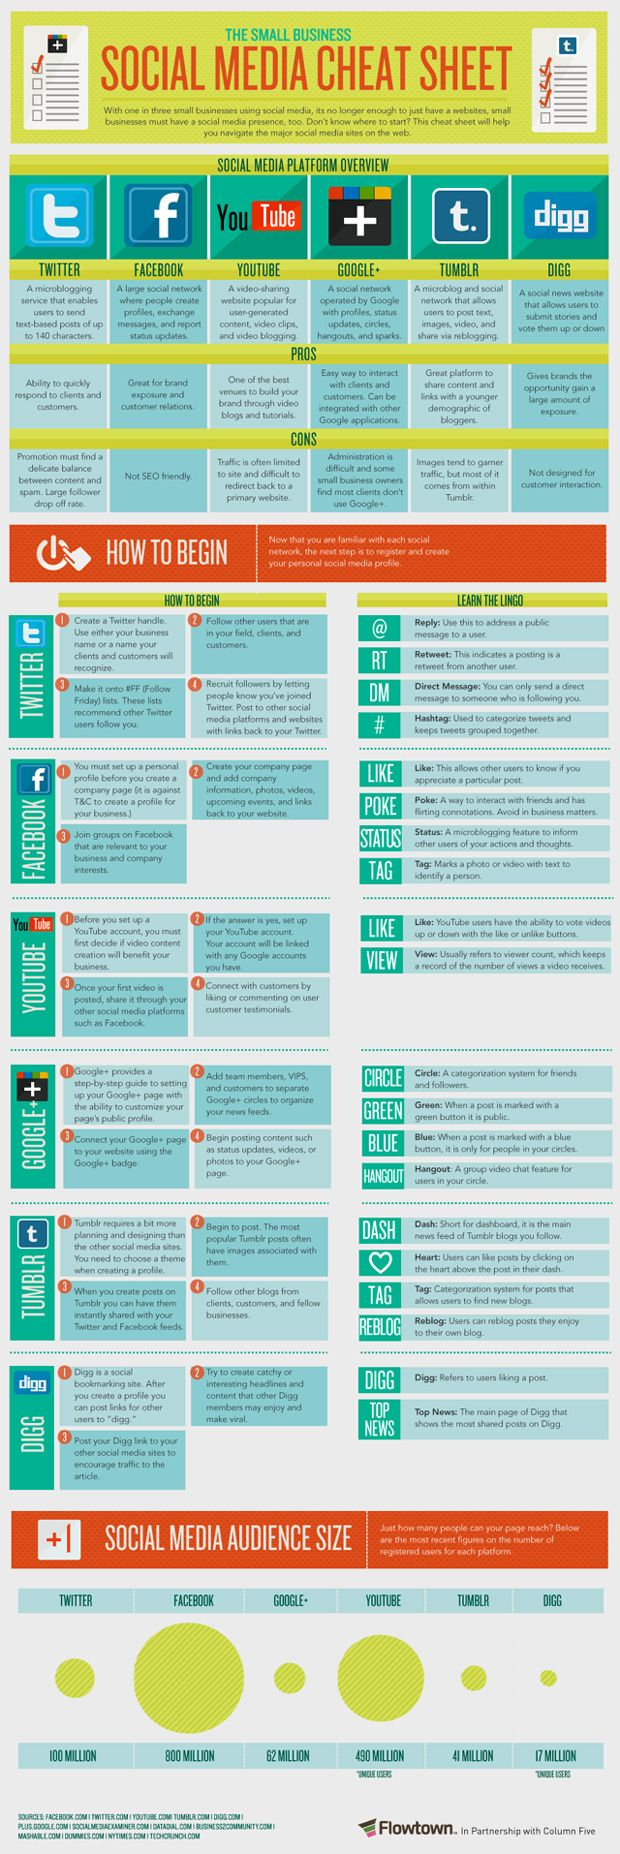 Social Media Cheat Sheet: incls helpful overview of each network (Twitter, Facebook, YouTube, Google+, Tumblr, digg) [source: Flowtown, 2012]